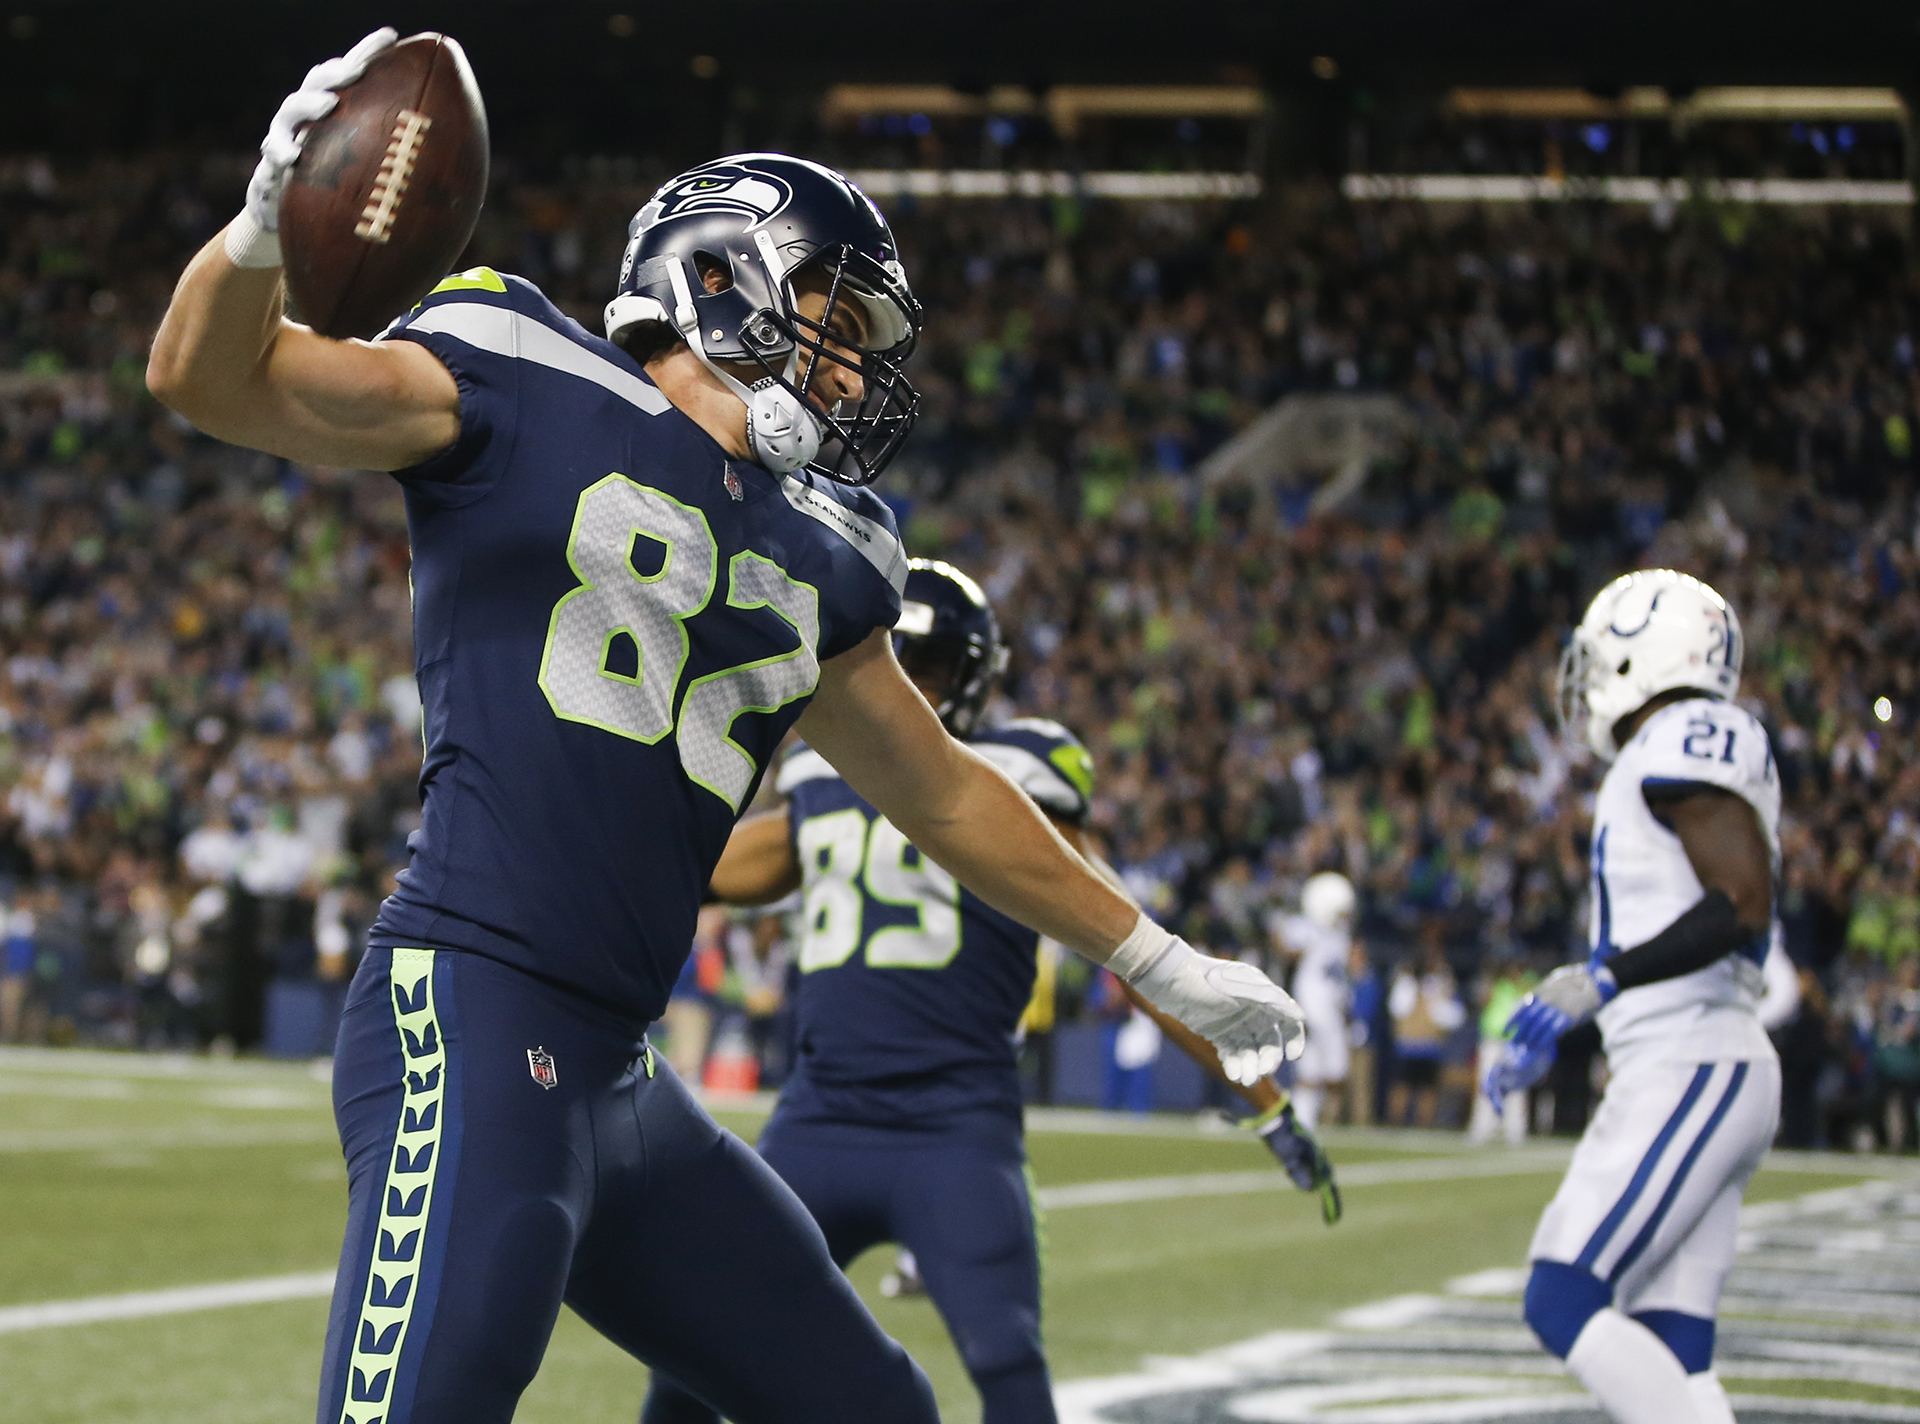 NFL Report: Turnovers doom Rams in loss to Seahawks